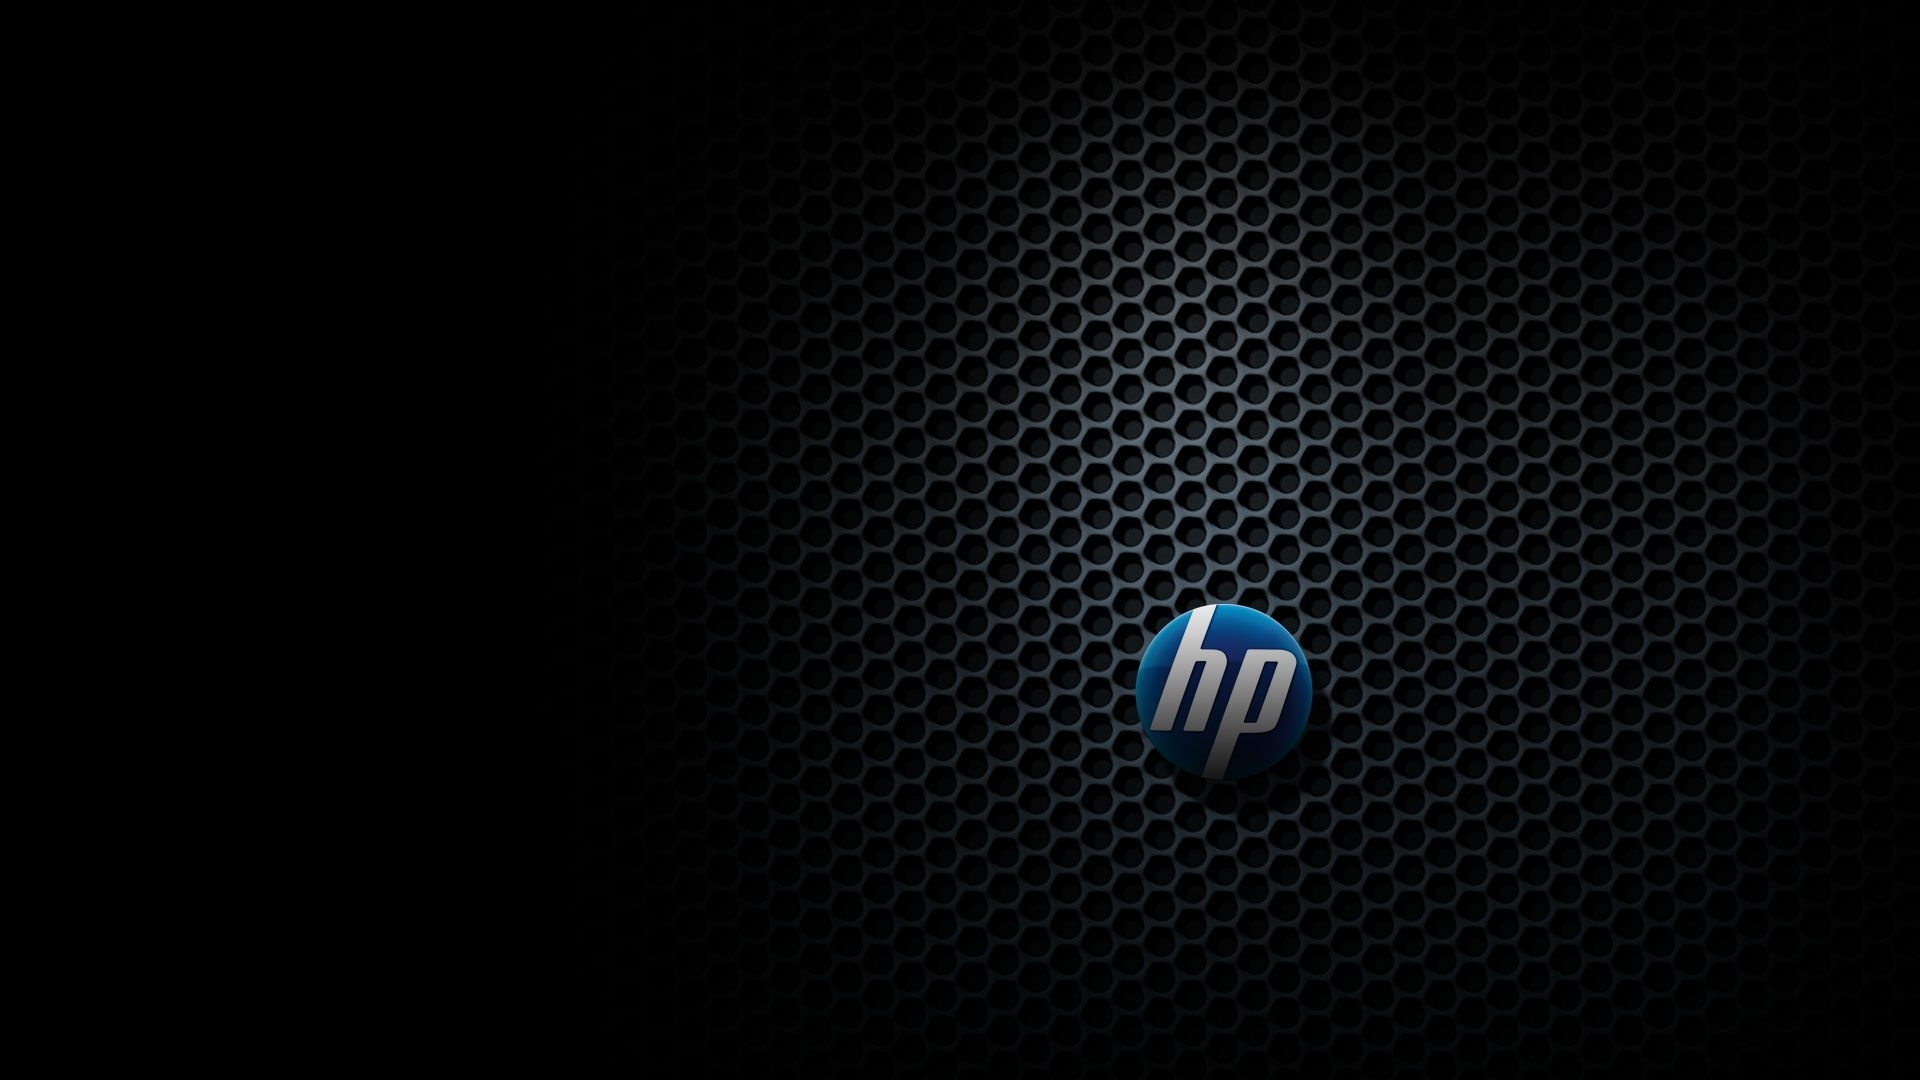 10 Top Hewlett Packard Wallpapers Hd FULL HD 1920×1080 For PC Background